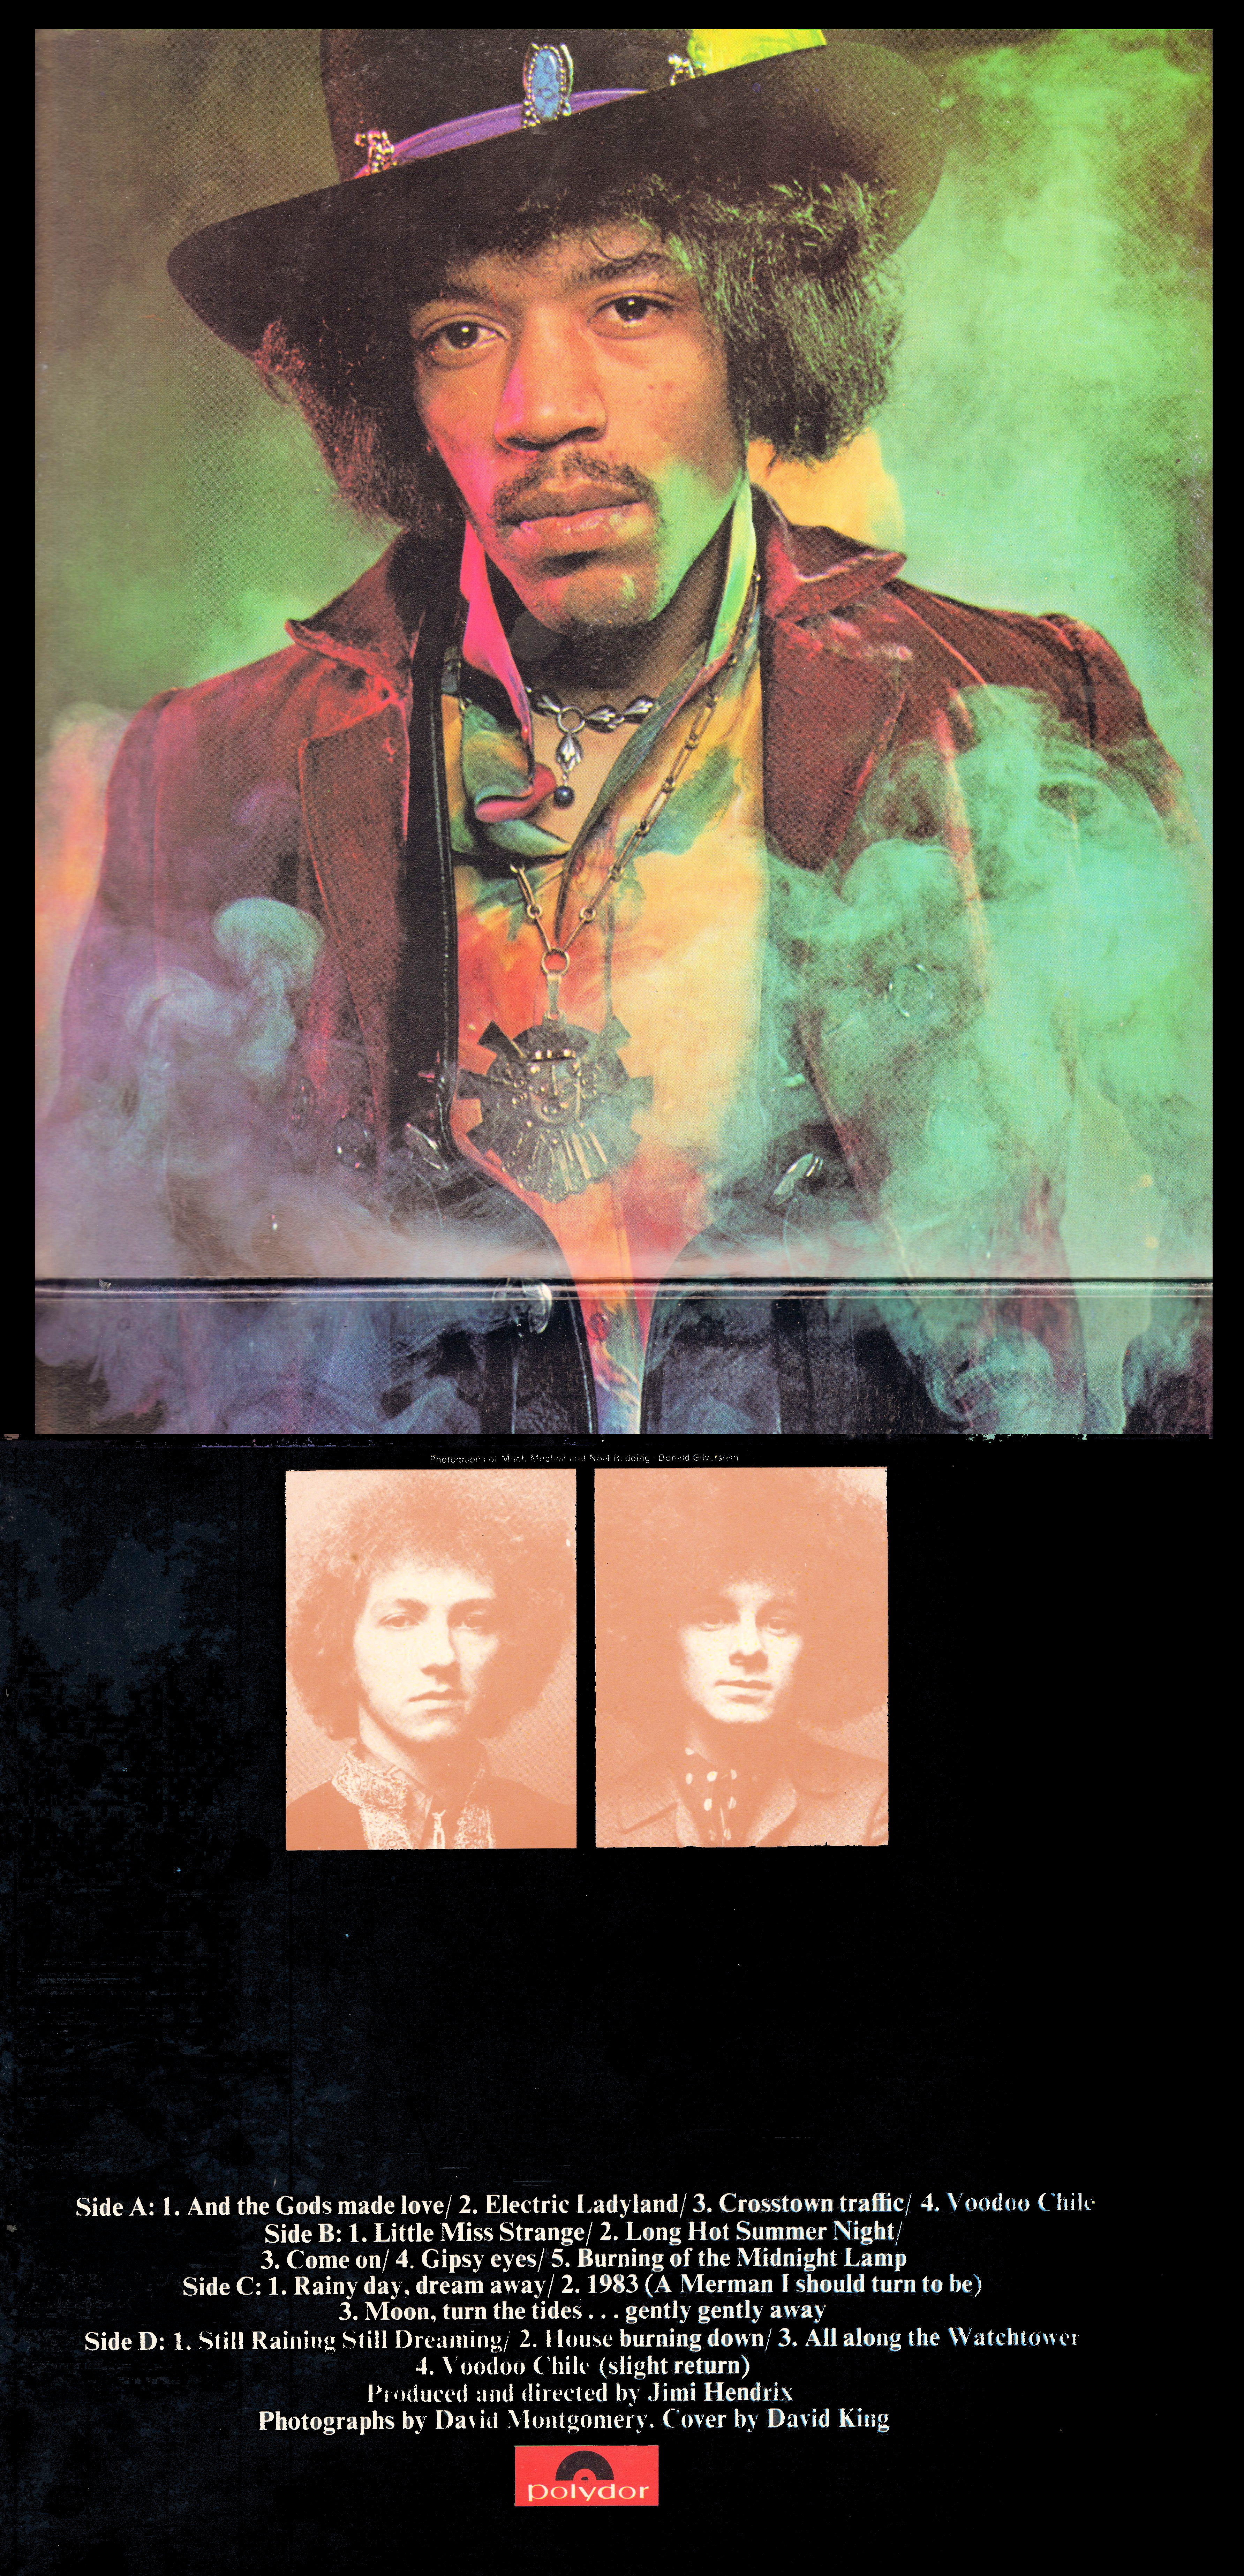 Discographie : Rééditions & Compilations - Page 13 Jimi%20Hendrix%20-%20Electric%20Ladyland%20-%20Polydor%20SLPHM-D-184183-84%20-%20Inside%20Italy